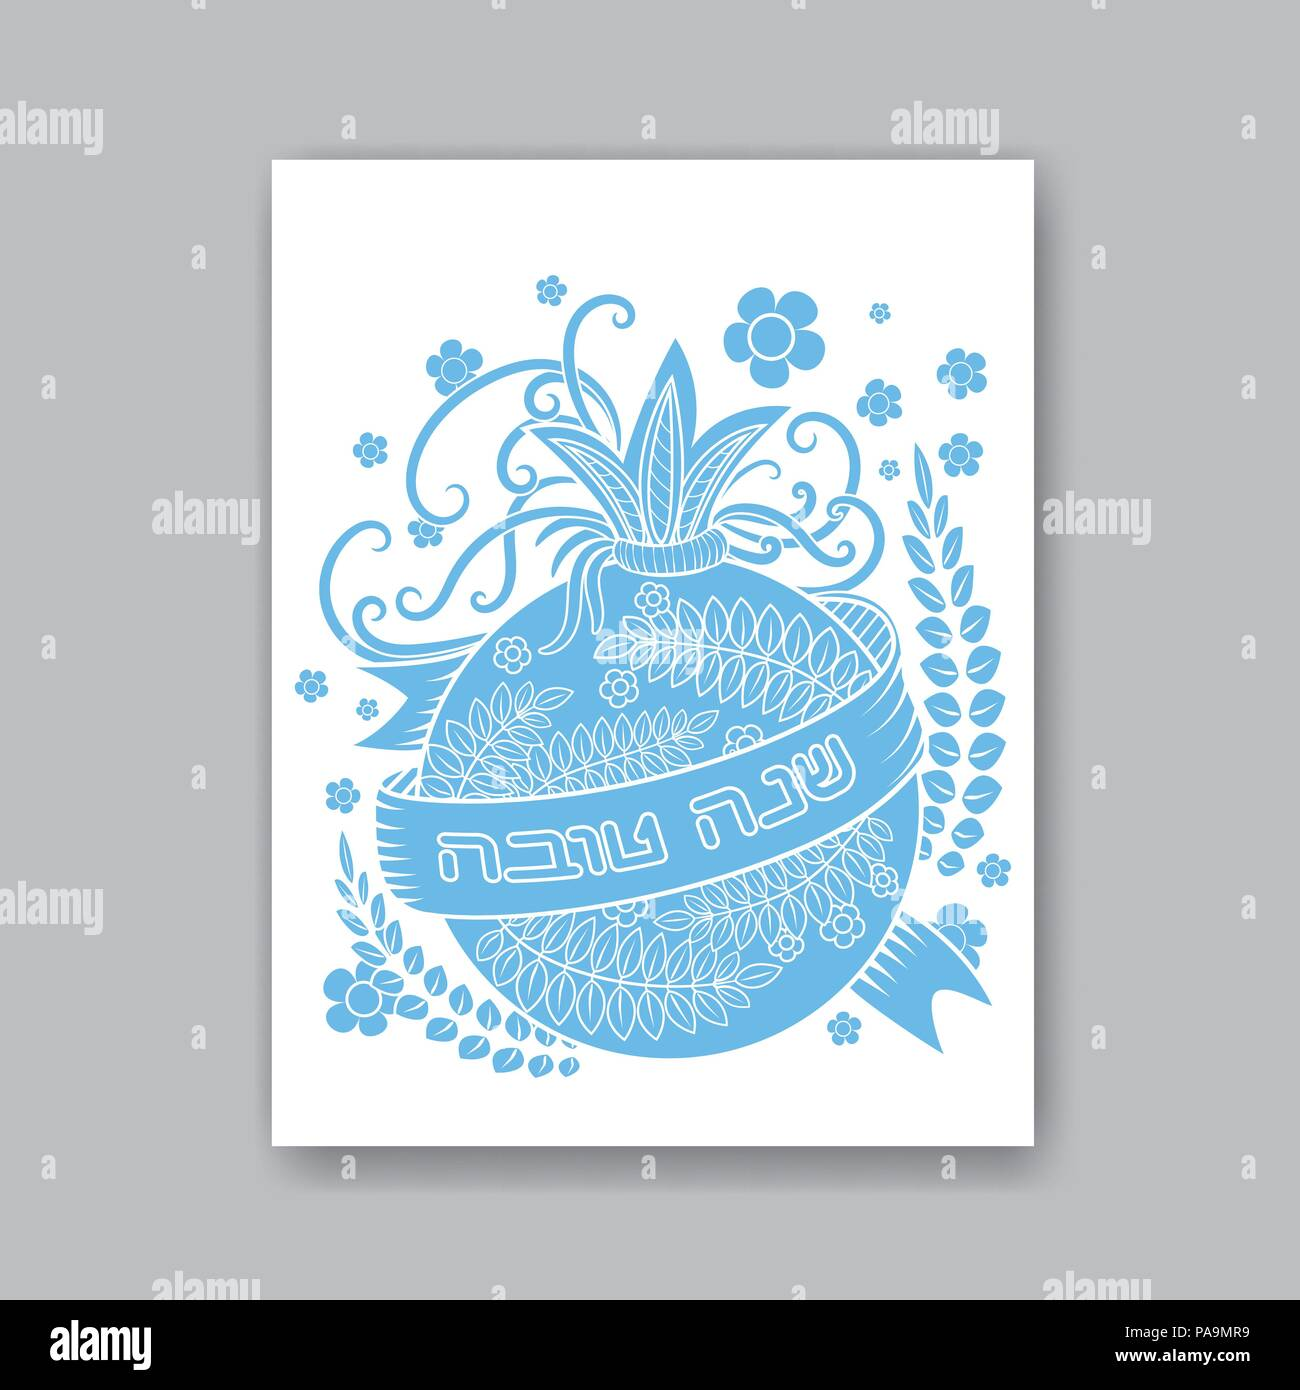 Rosh Hashanah Jewish New Year Greeting Card Design With